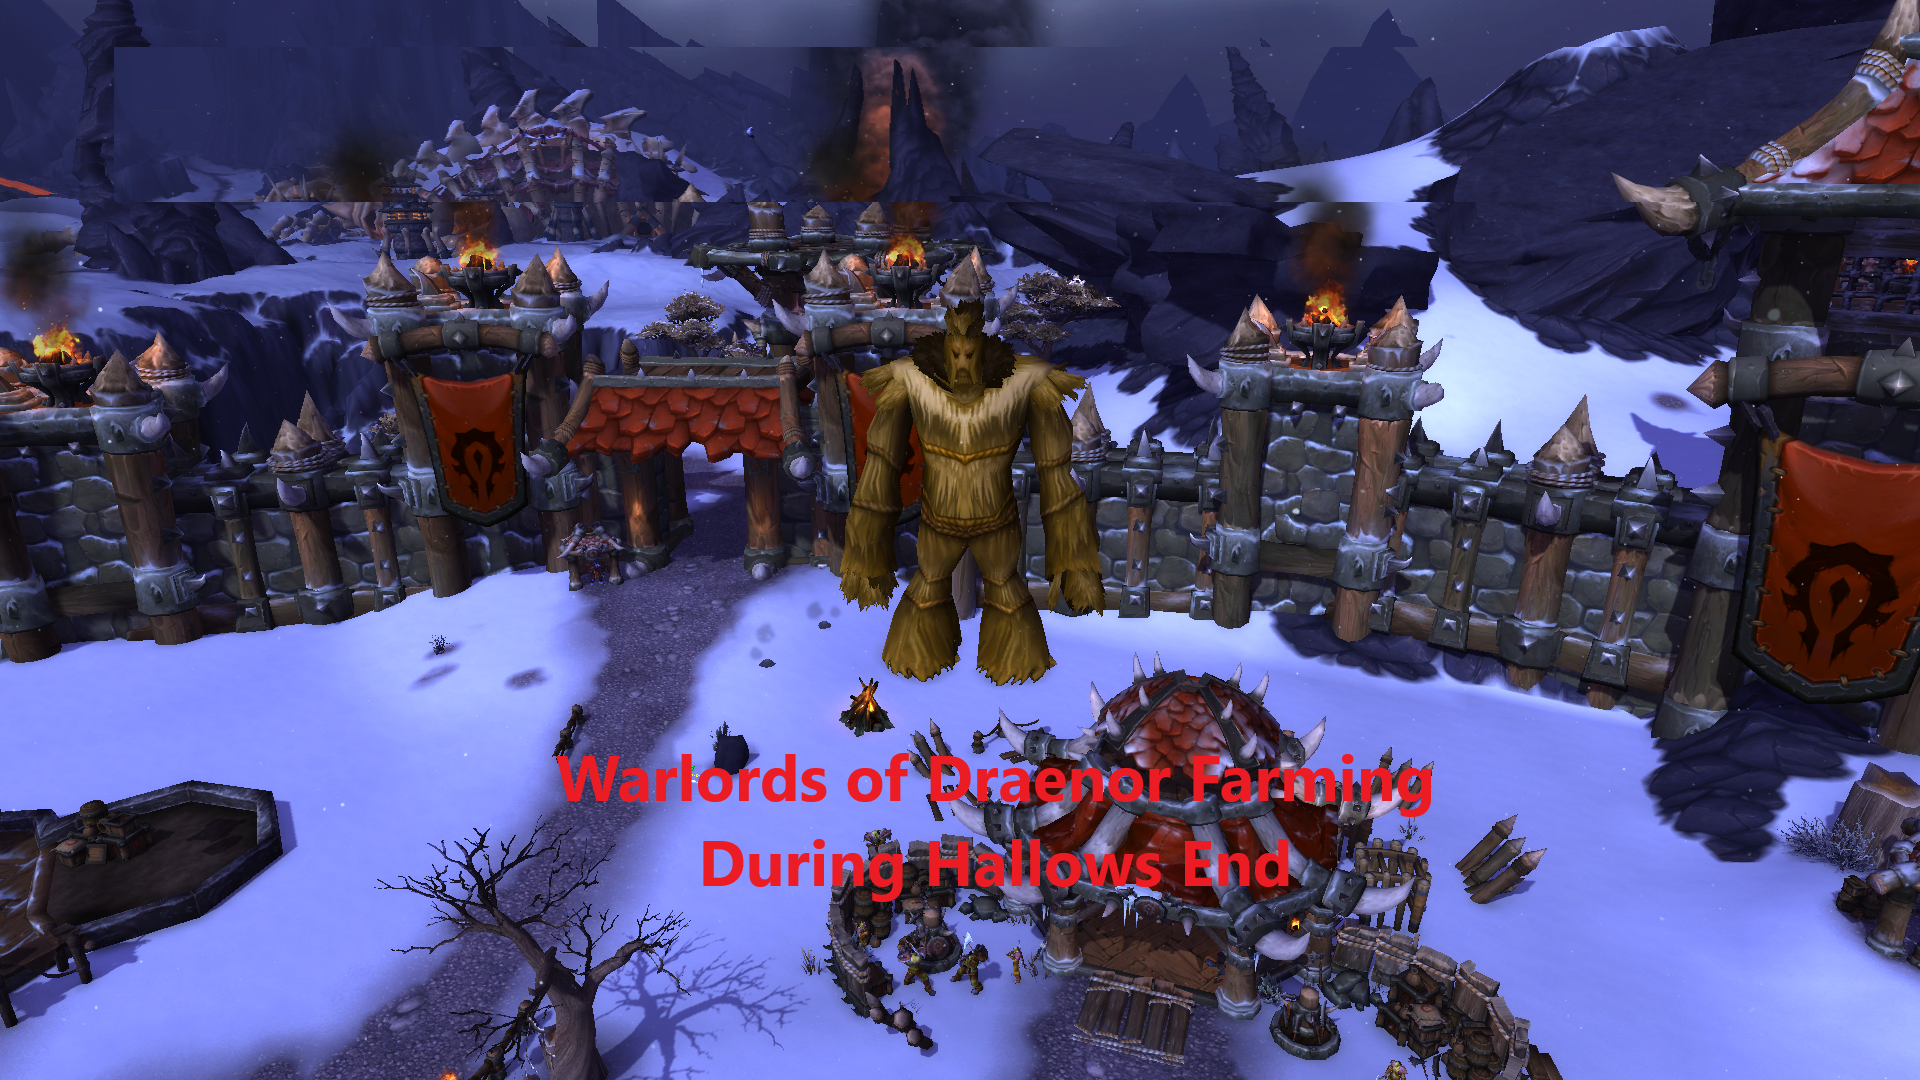 Warlords Of Draenor Farming During Hallows End Warcraft Gold Guides